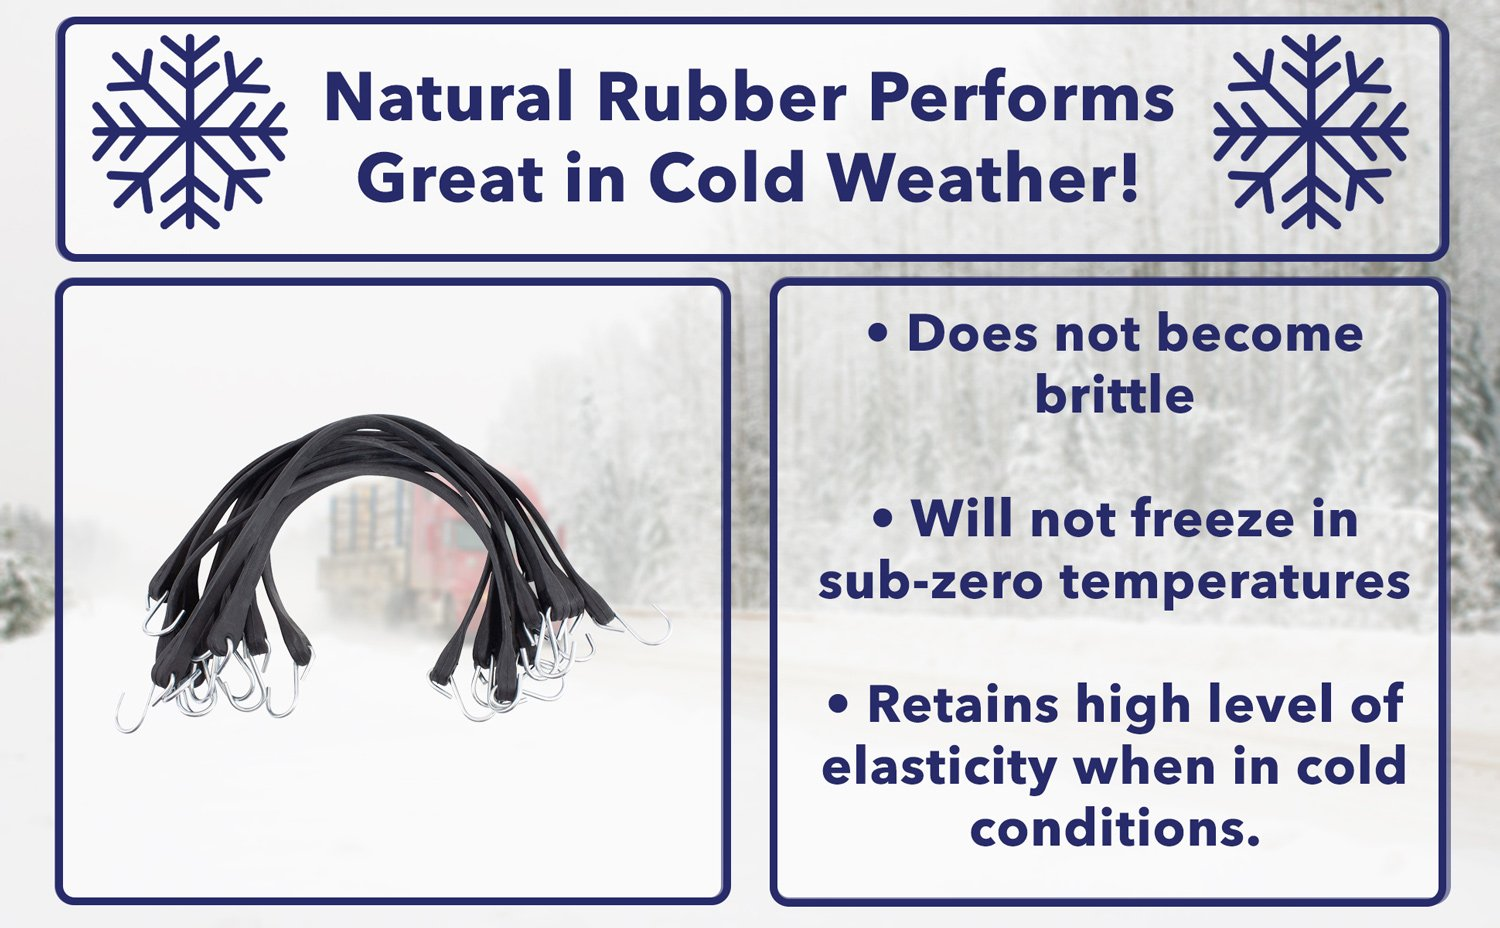 Natural Rubber Performs Great in Cold Weather!